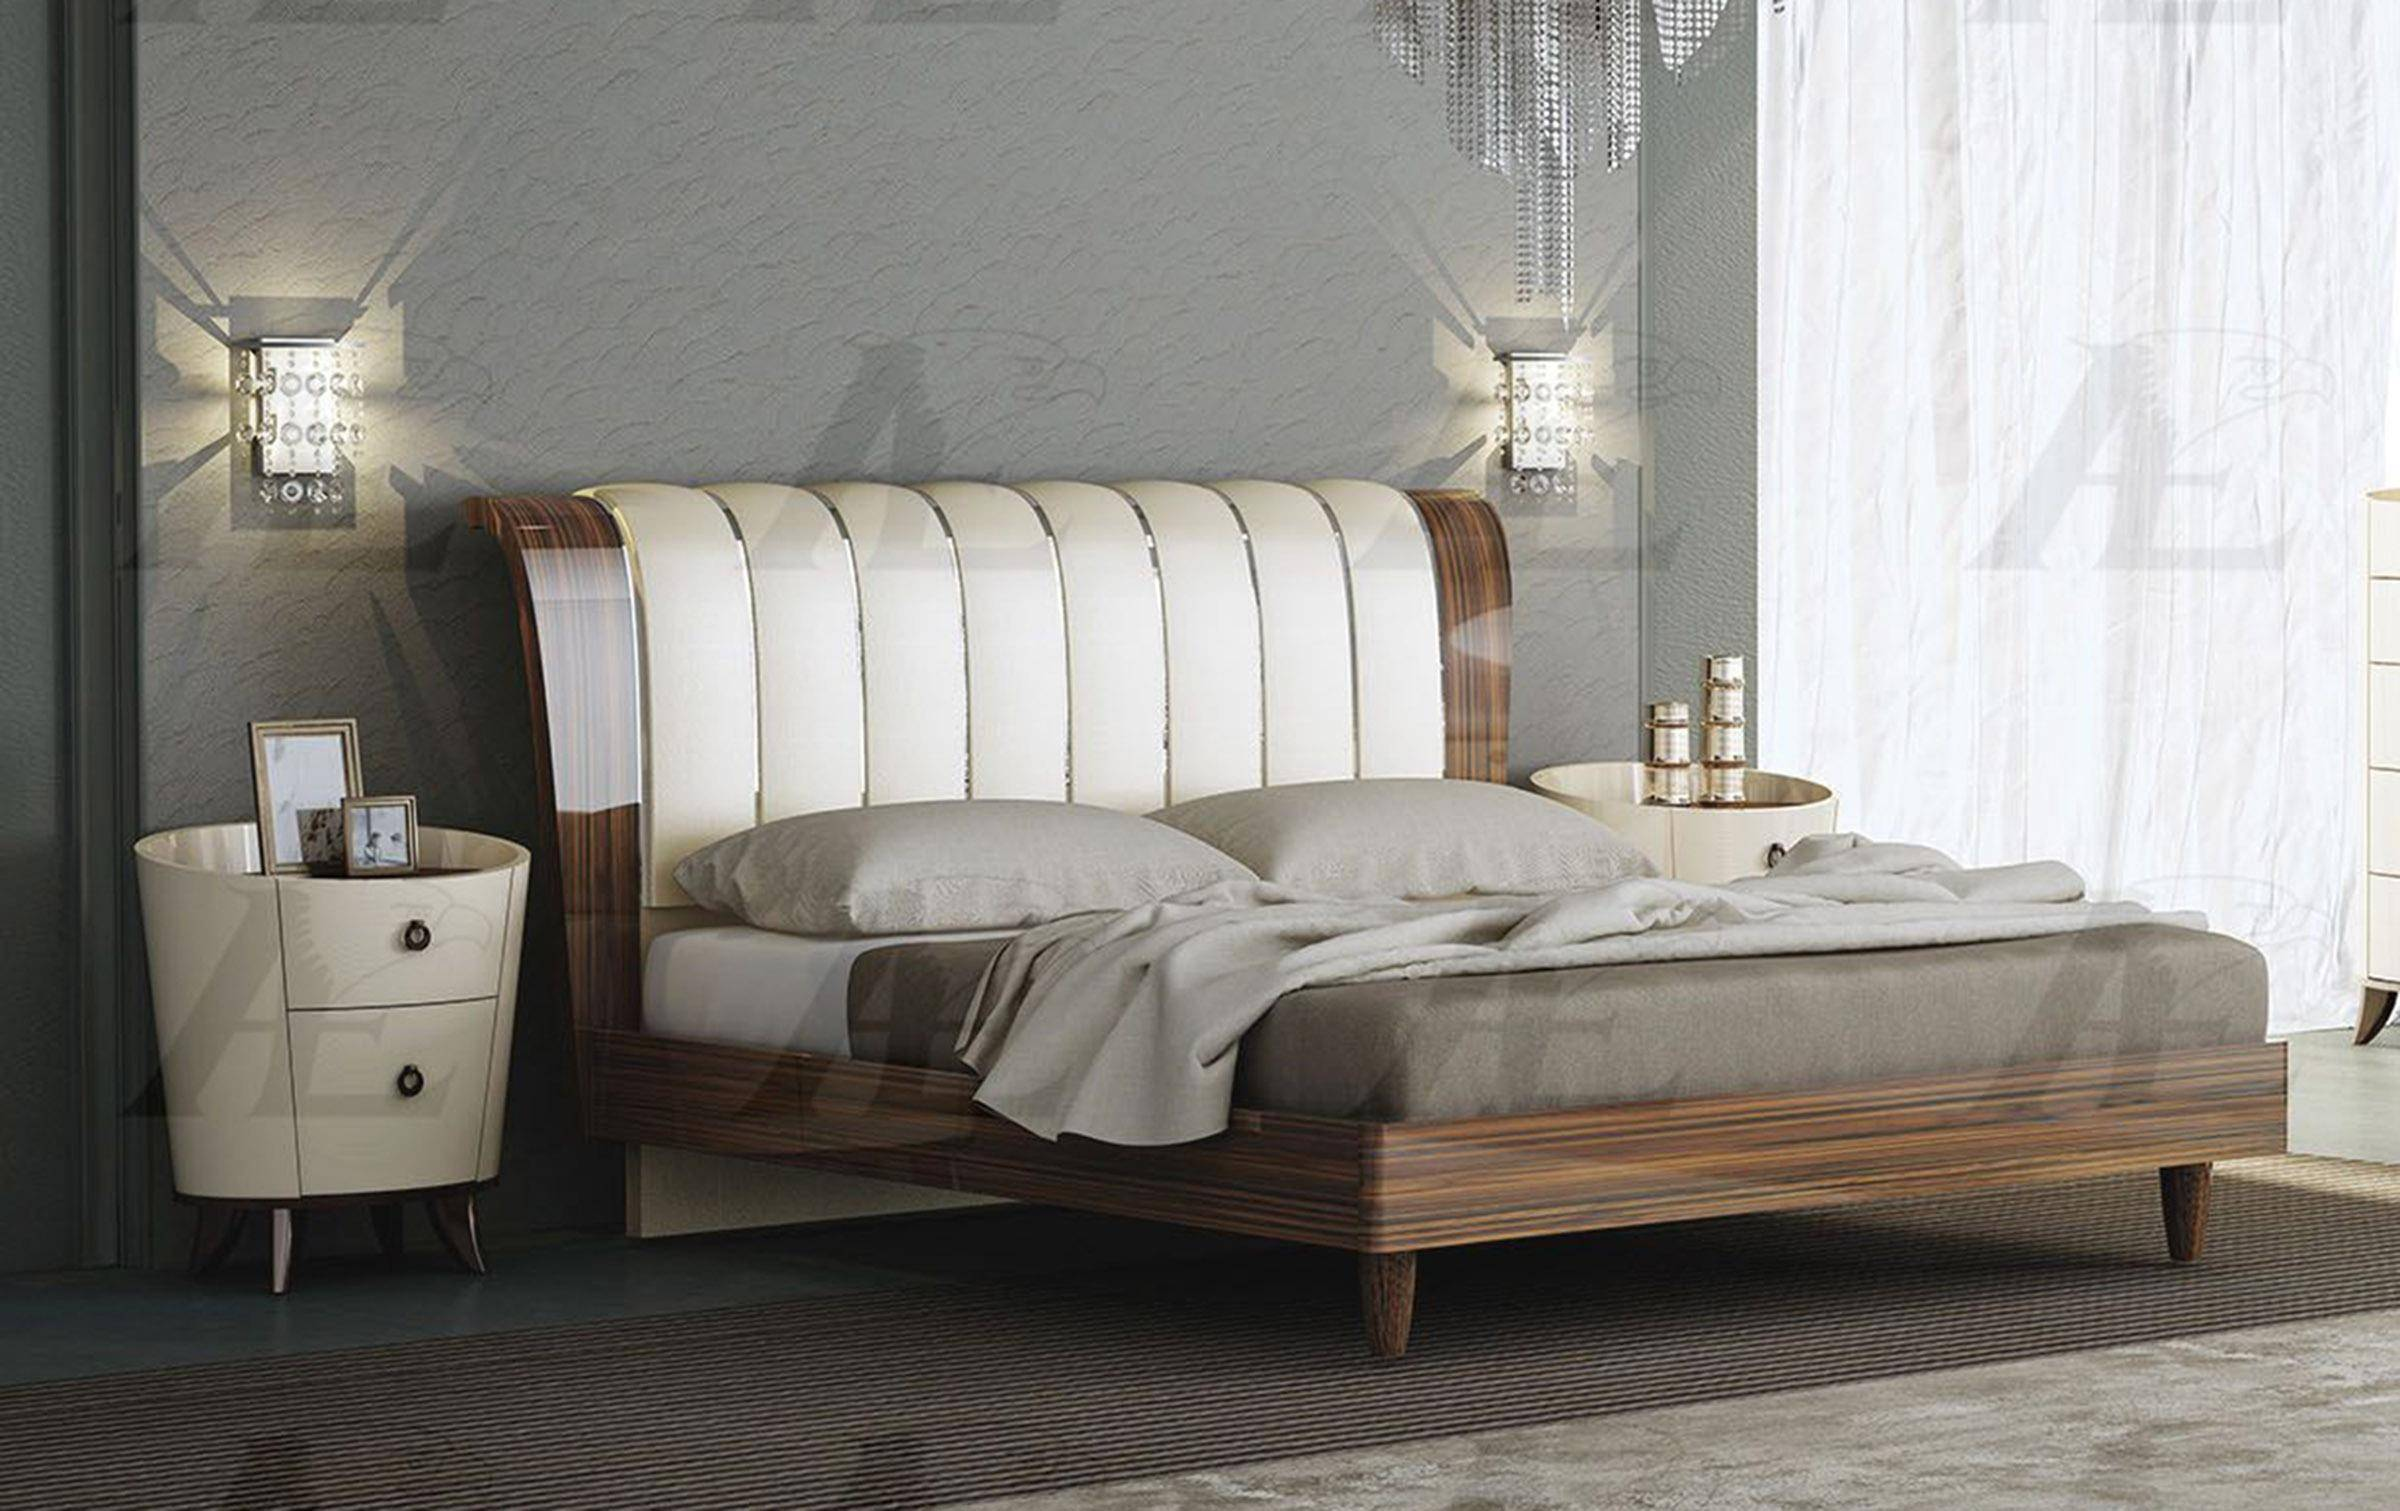 american eagle furniture p101 bed q ivory brown rosewood queen size rh nyfurnitureoutlets com